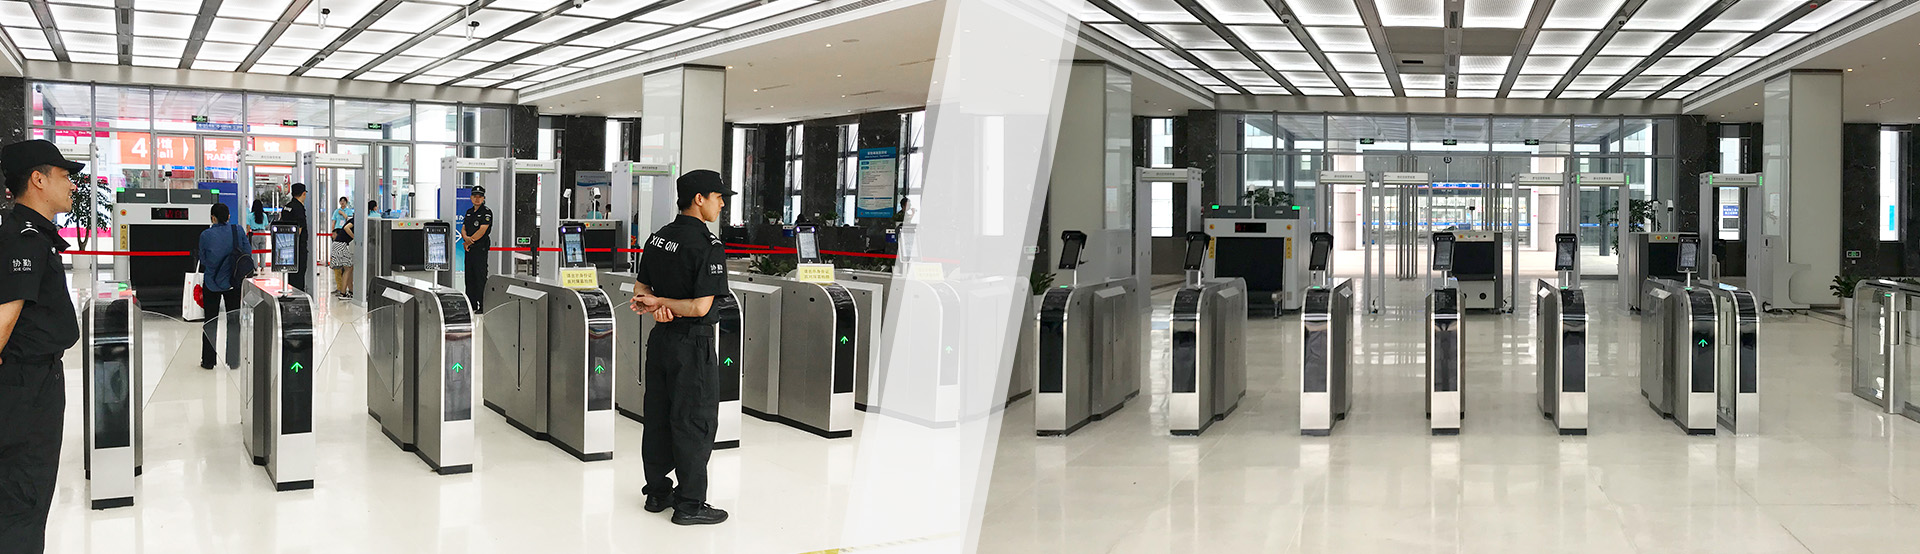 Motorized Full Height Turnstile Door with Temperature Measuring AI Face Recognition